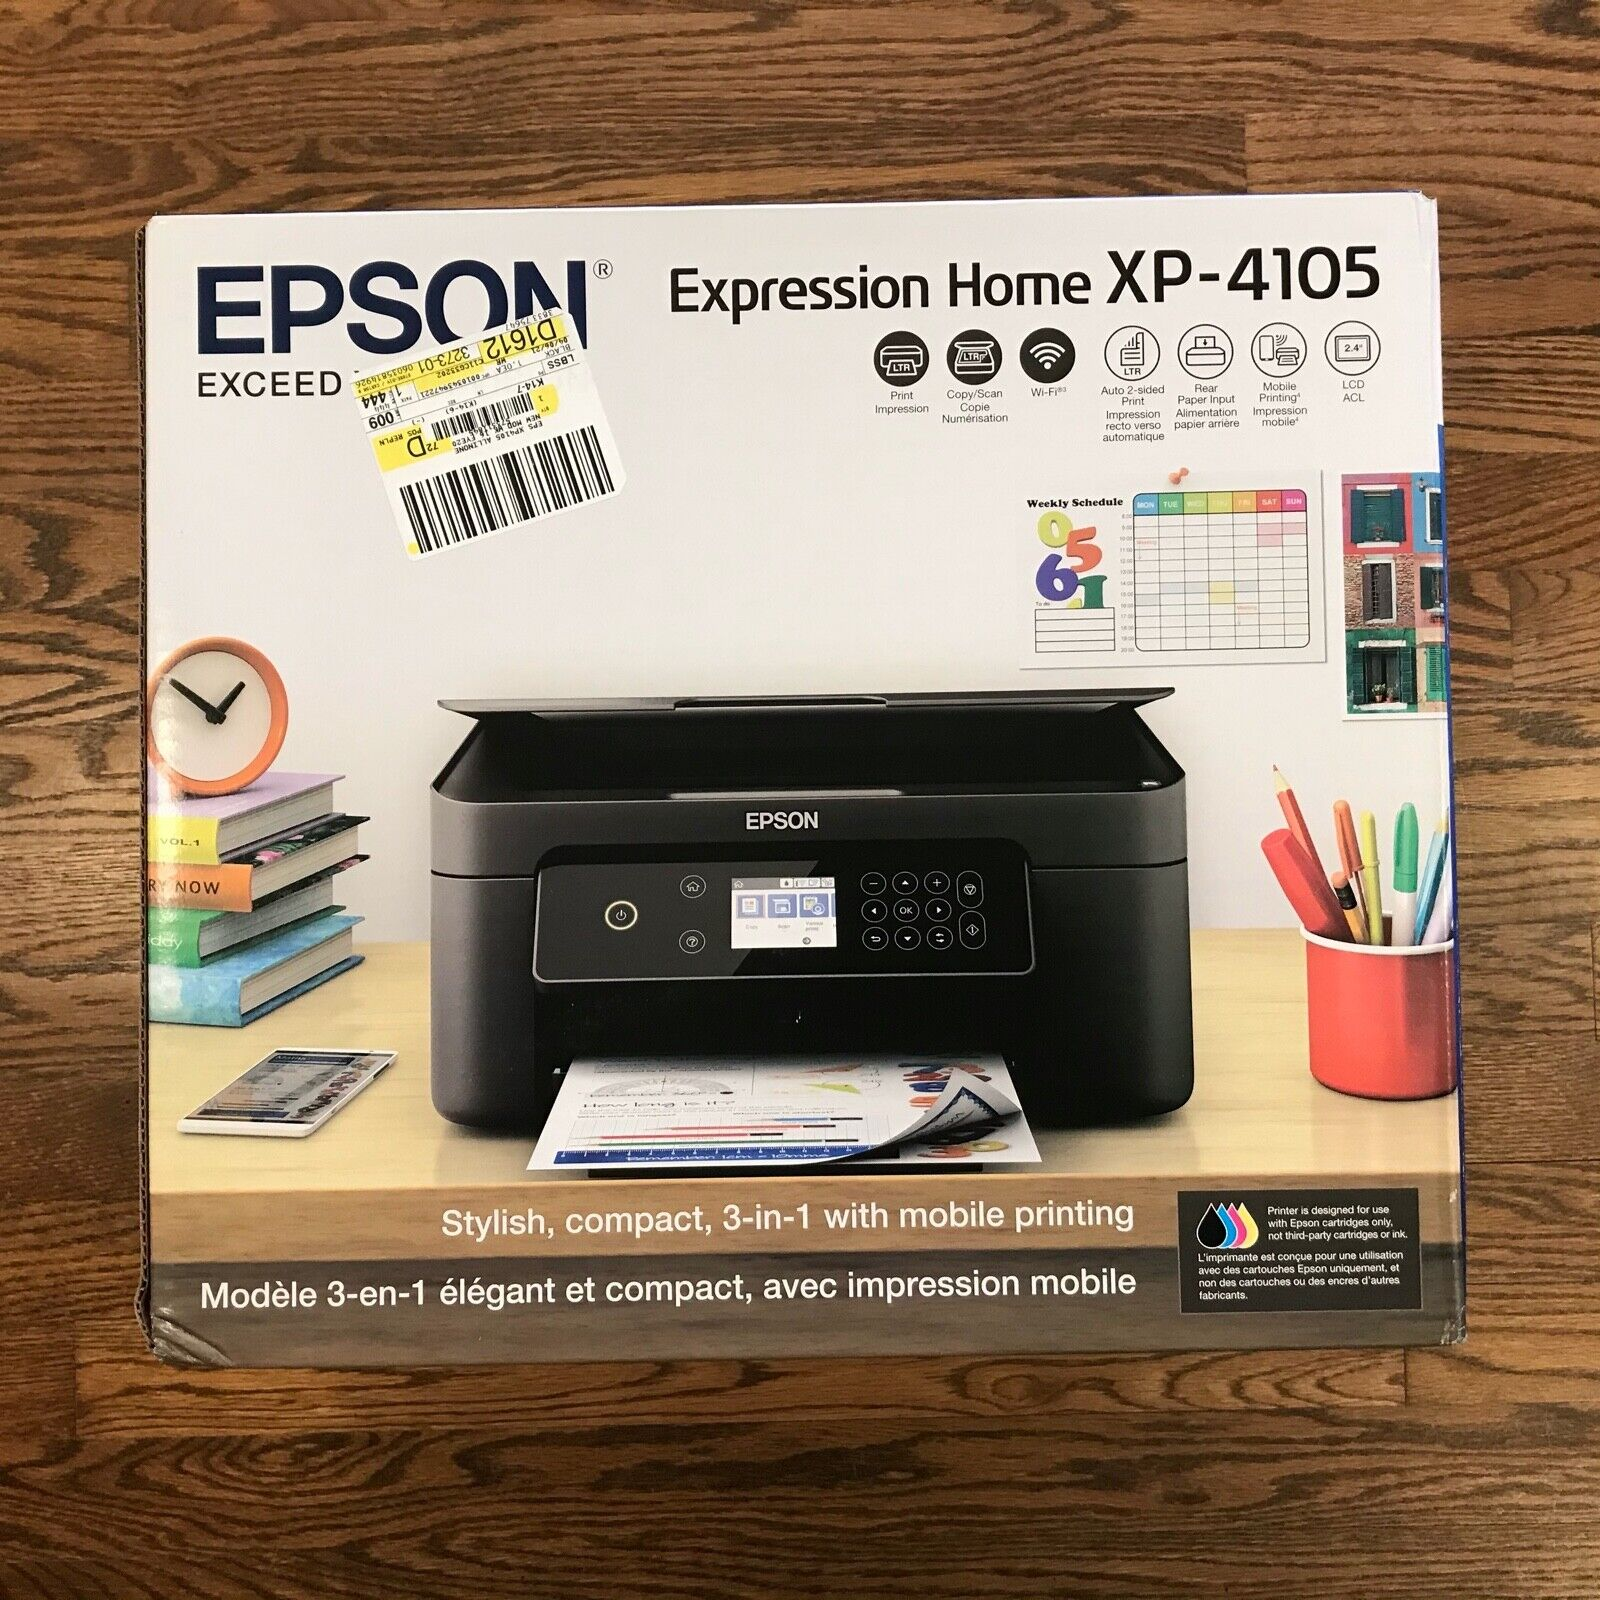 New Epson Expression Home XP-4105  Wireless All-in-One Color Inkjet Printer